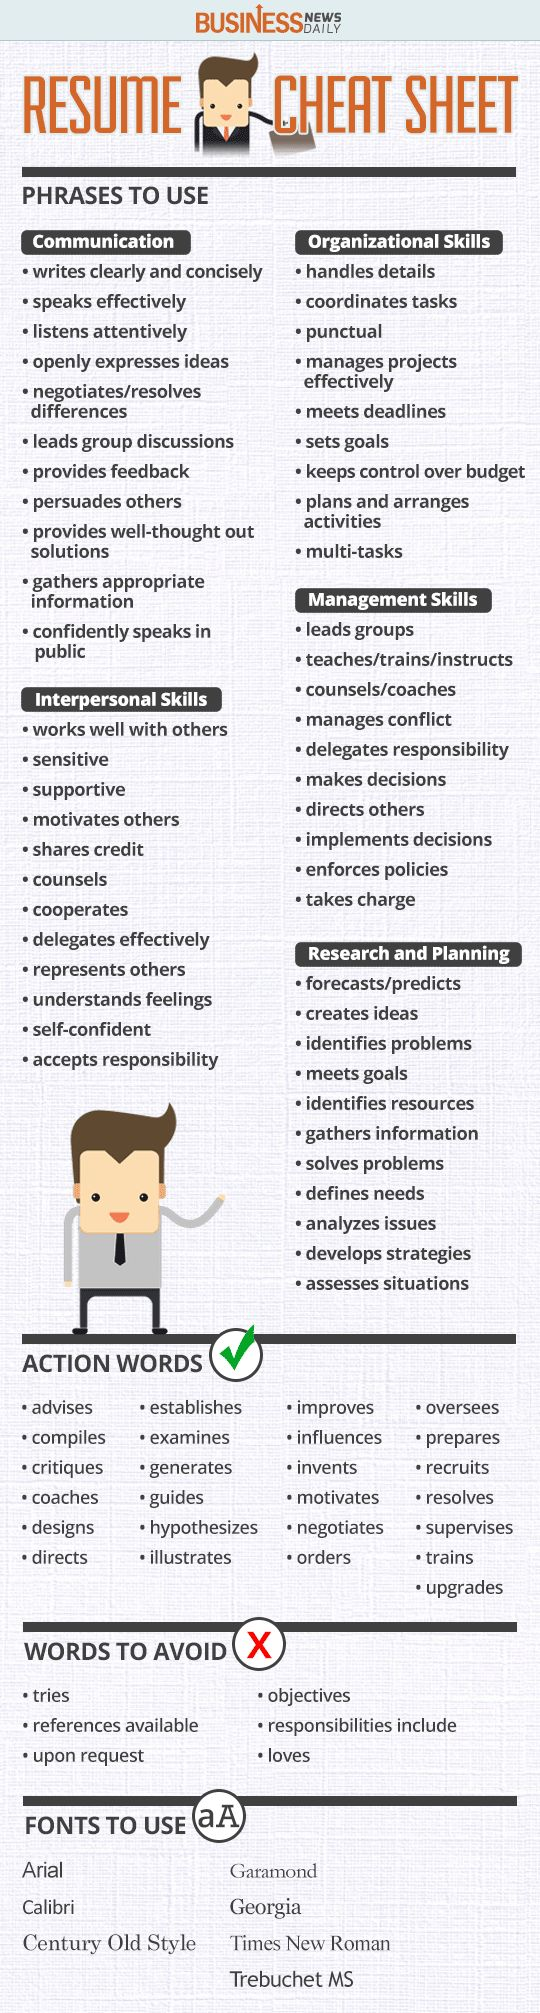 Opposenewapstandardsus  Gorgeous  Ideas About Resume On Pinterest  Cv Format Resume Cv And  With Hot Resume Cheat Sheet Infographic Andrews Almost Done With A Complete Unit On Employment Which With Appealing Modern Resume Also Housekeeping Resume In Addition Construction Resume And Indeed Resume Search As Well As Resume Format  Additionally Resume Header From Pinterestcom With Opposenewapstandardsus  Hot  Ideas About Resume On Pinterest  Cv Format Resume Cv And  With Appealing Resume Cheat Sheet Infographic Andrews Almost Done With A Complete Unit On Employment Which And Gorgeous Modern Resume Also Housekeeping Resume In Addition Construction Resume From Pinterestcom